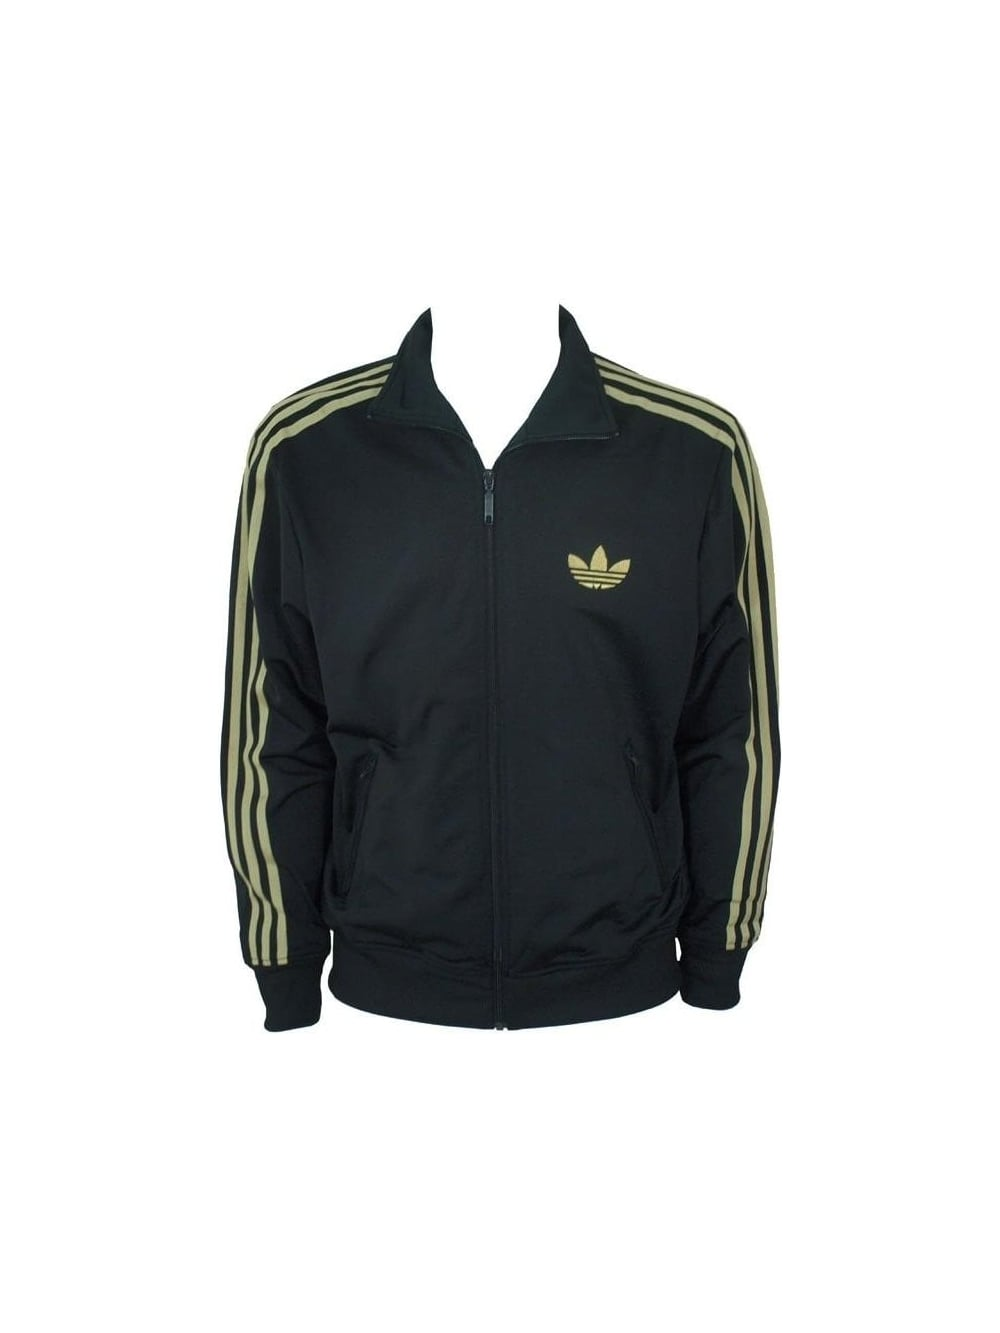 Adi Firebird Track Top Black Gold